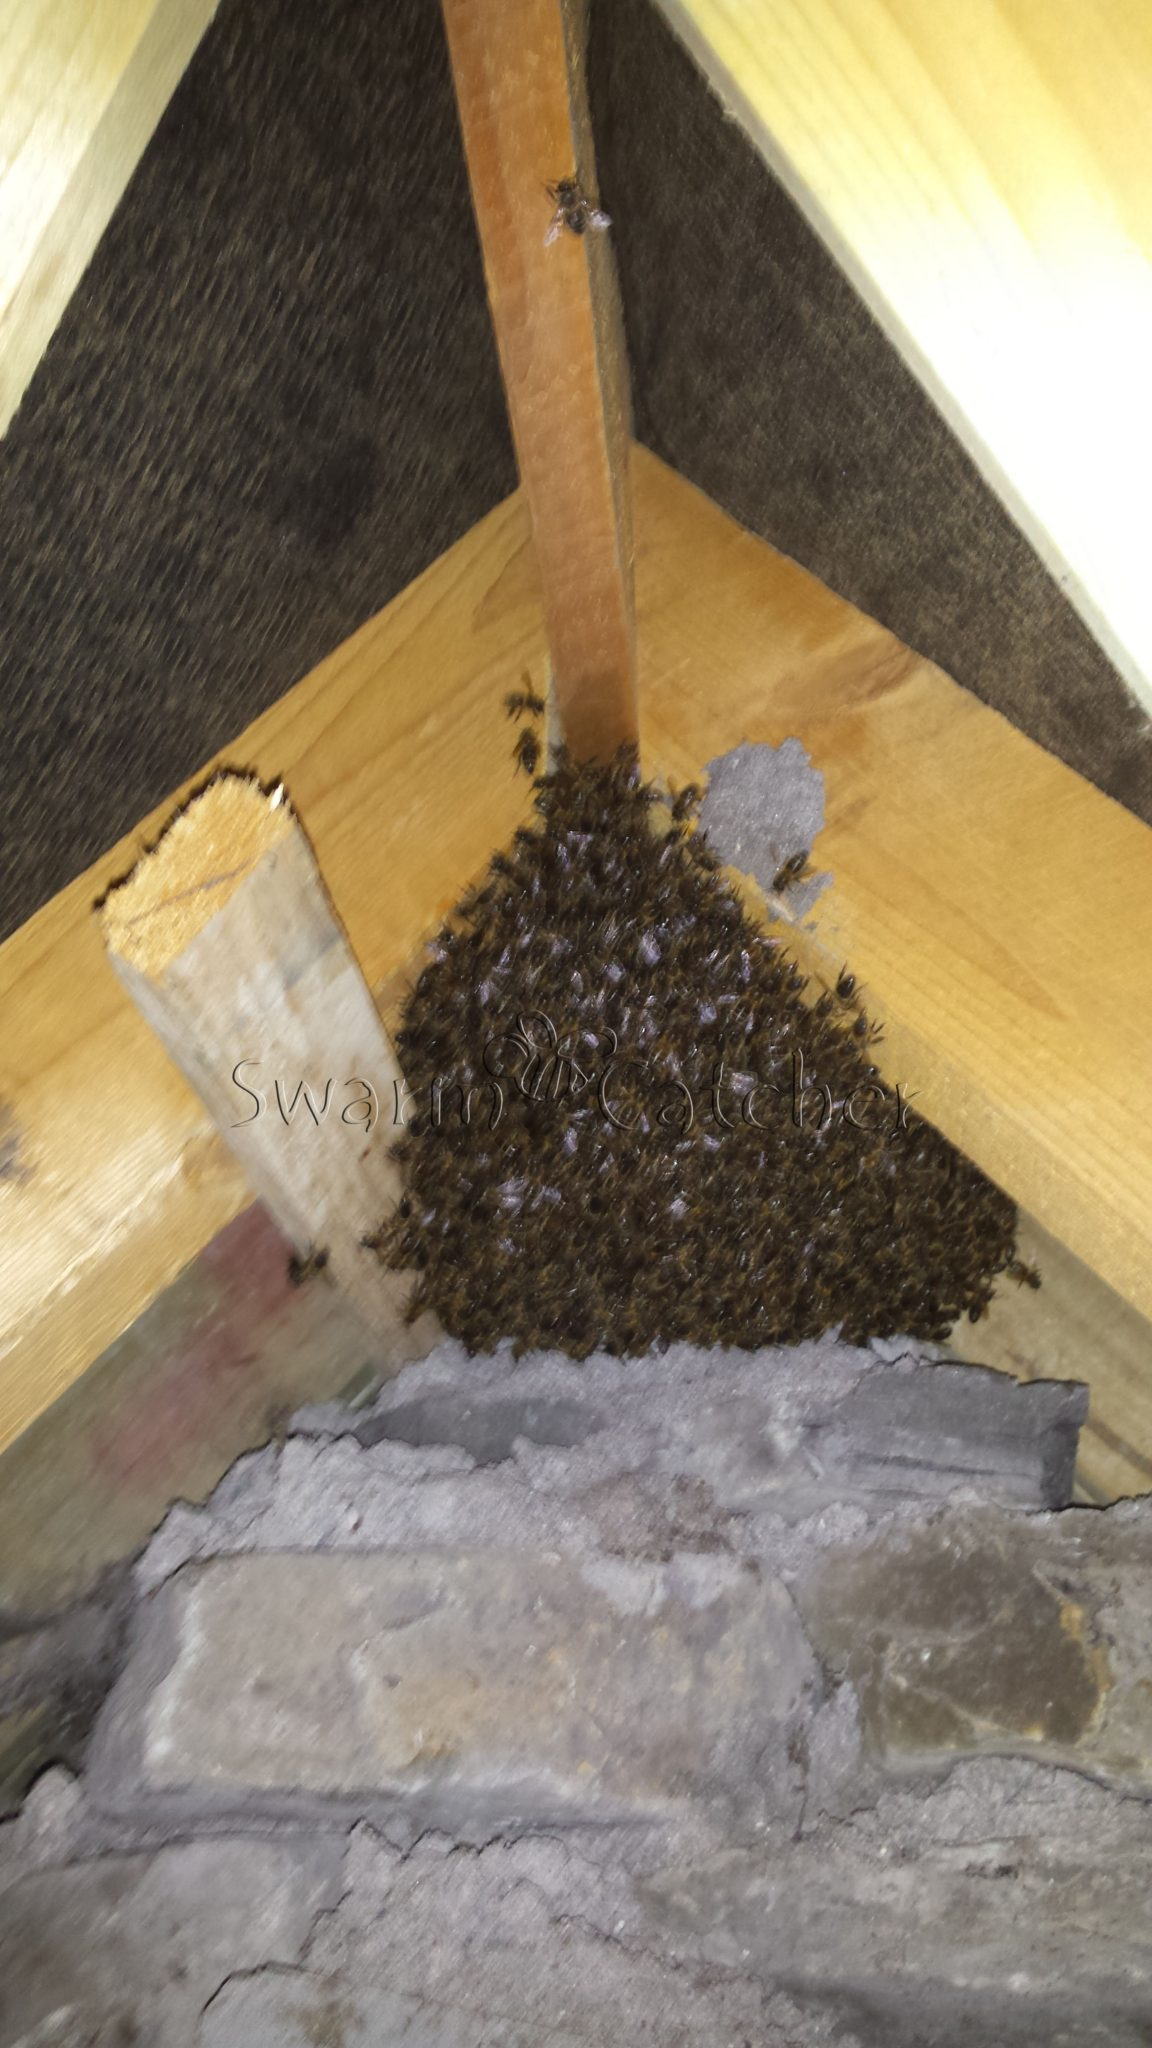 Honey bee nest in roof